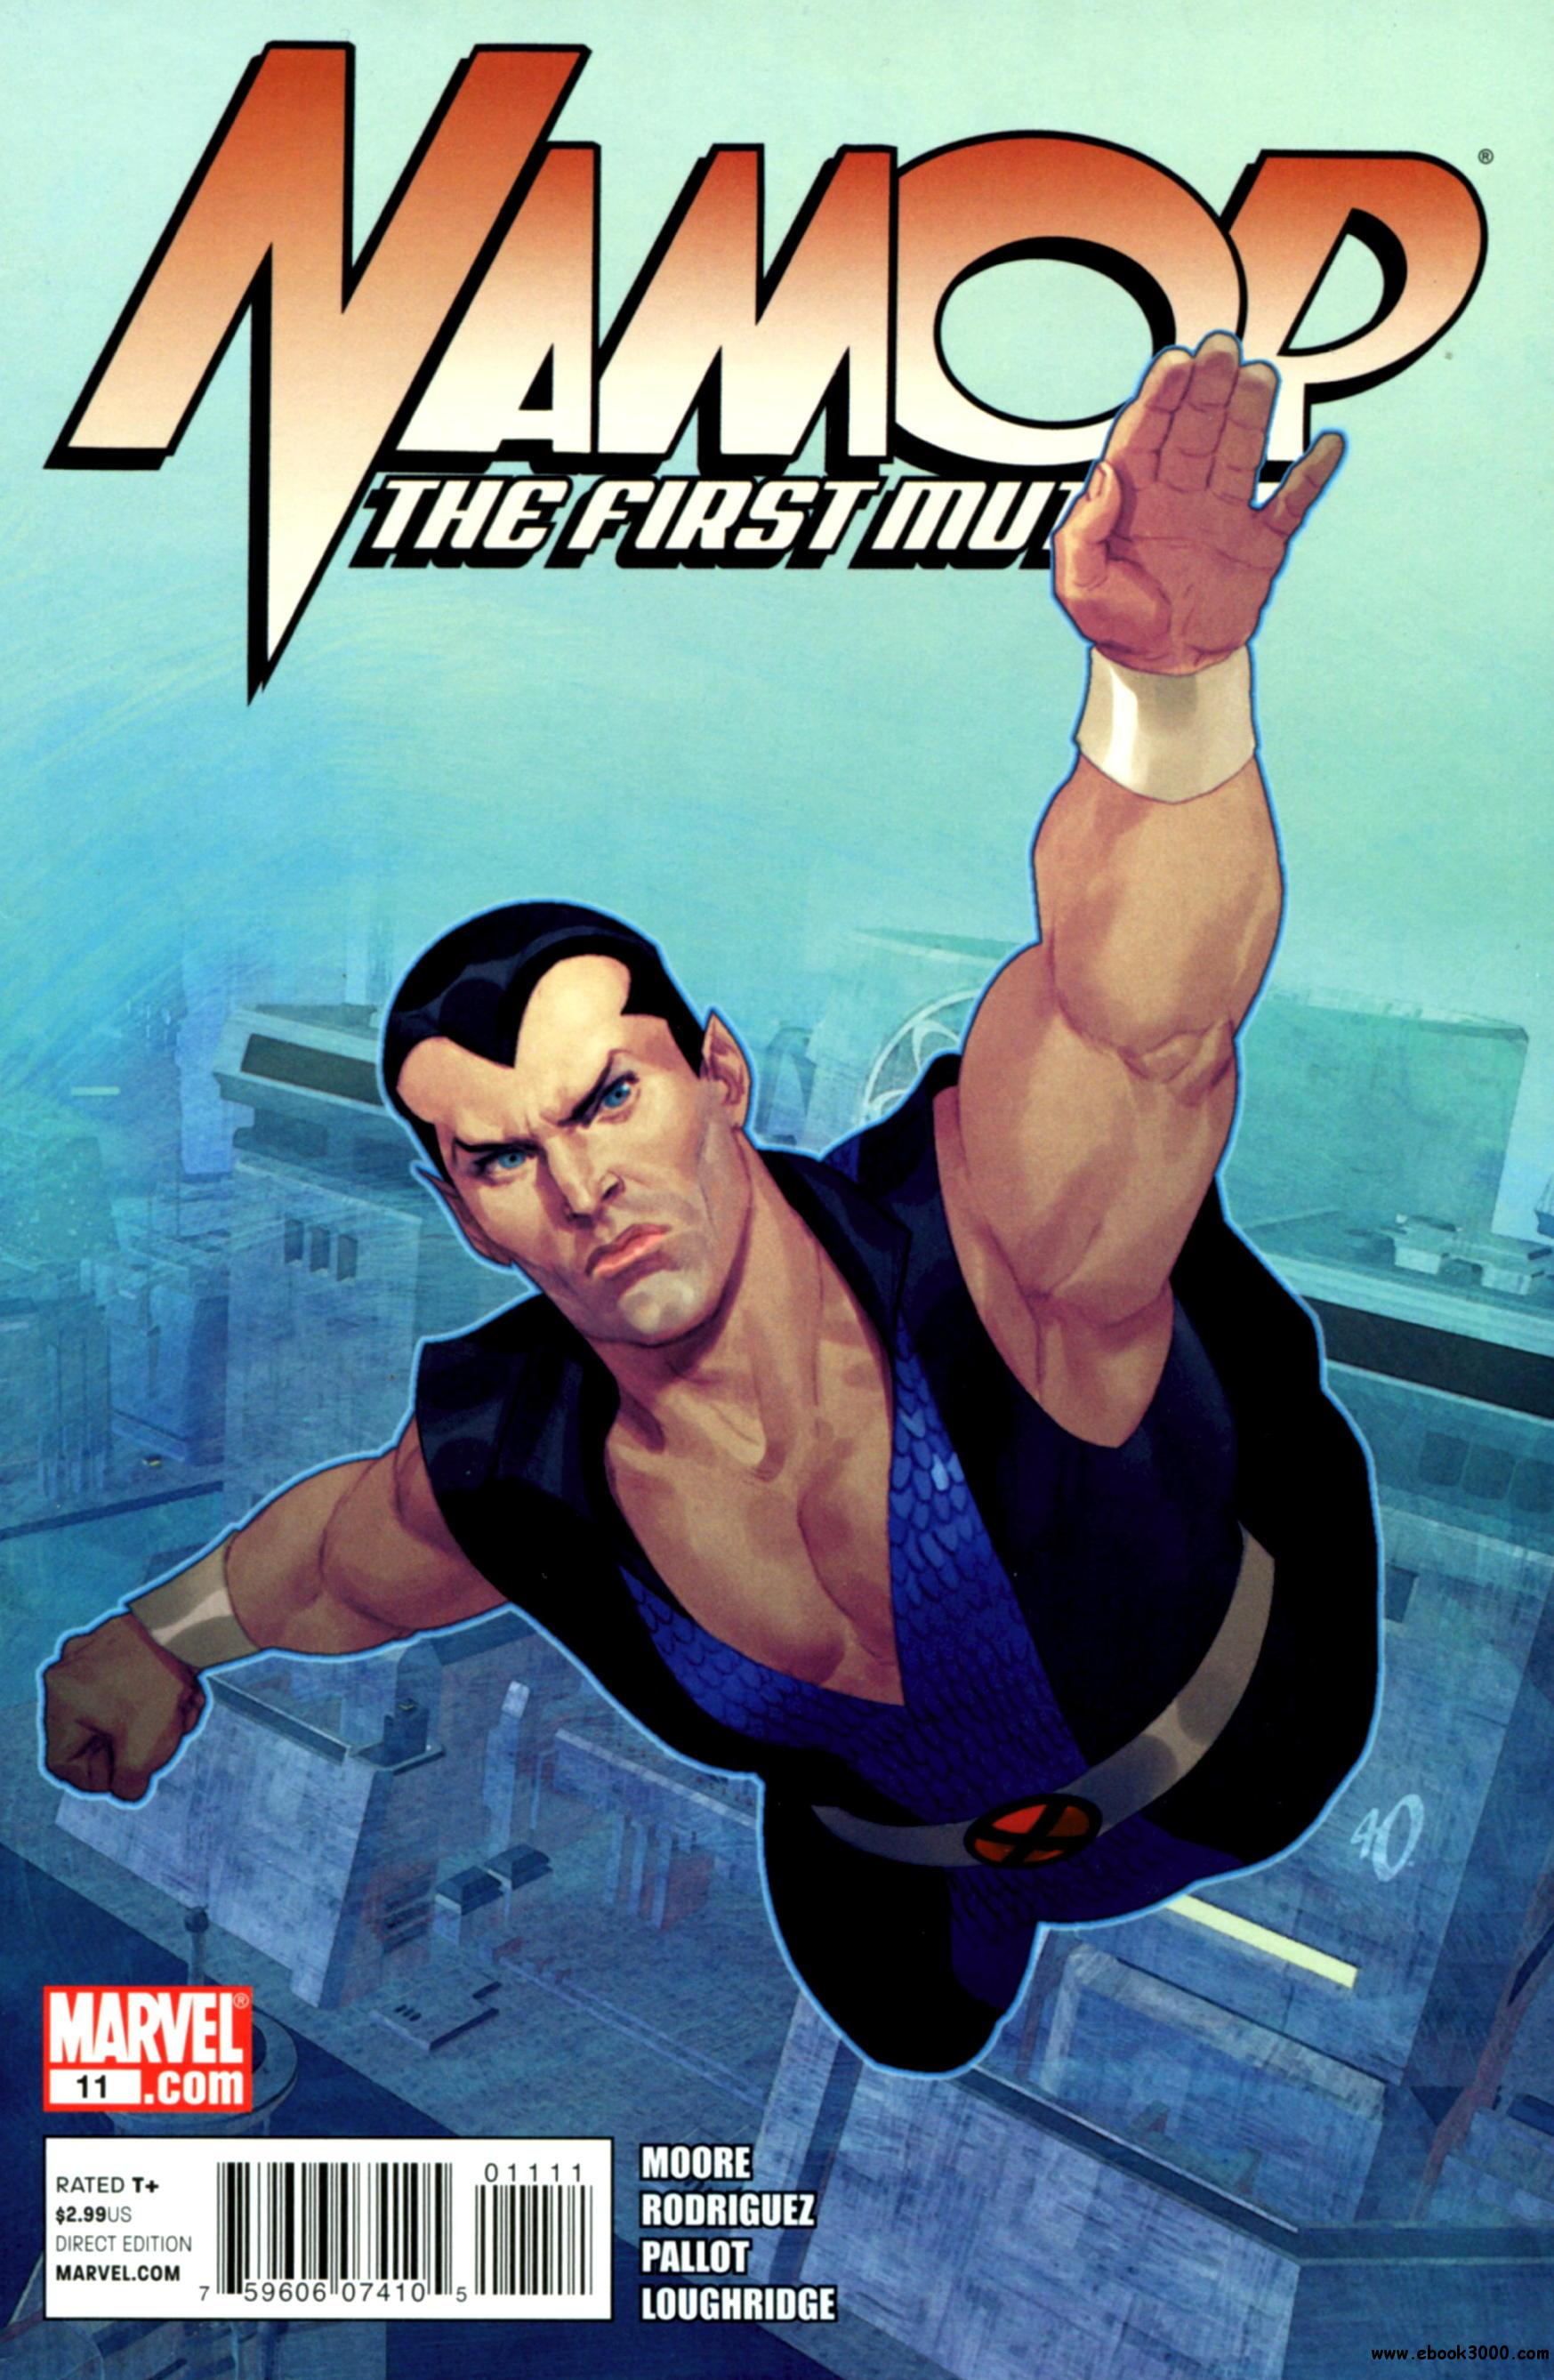 Namor - The First Mutant #11 (2011) free download